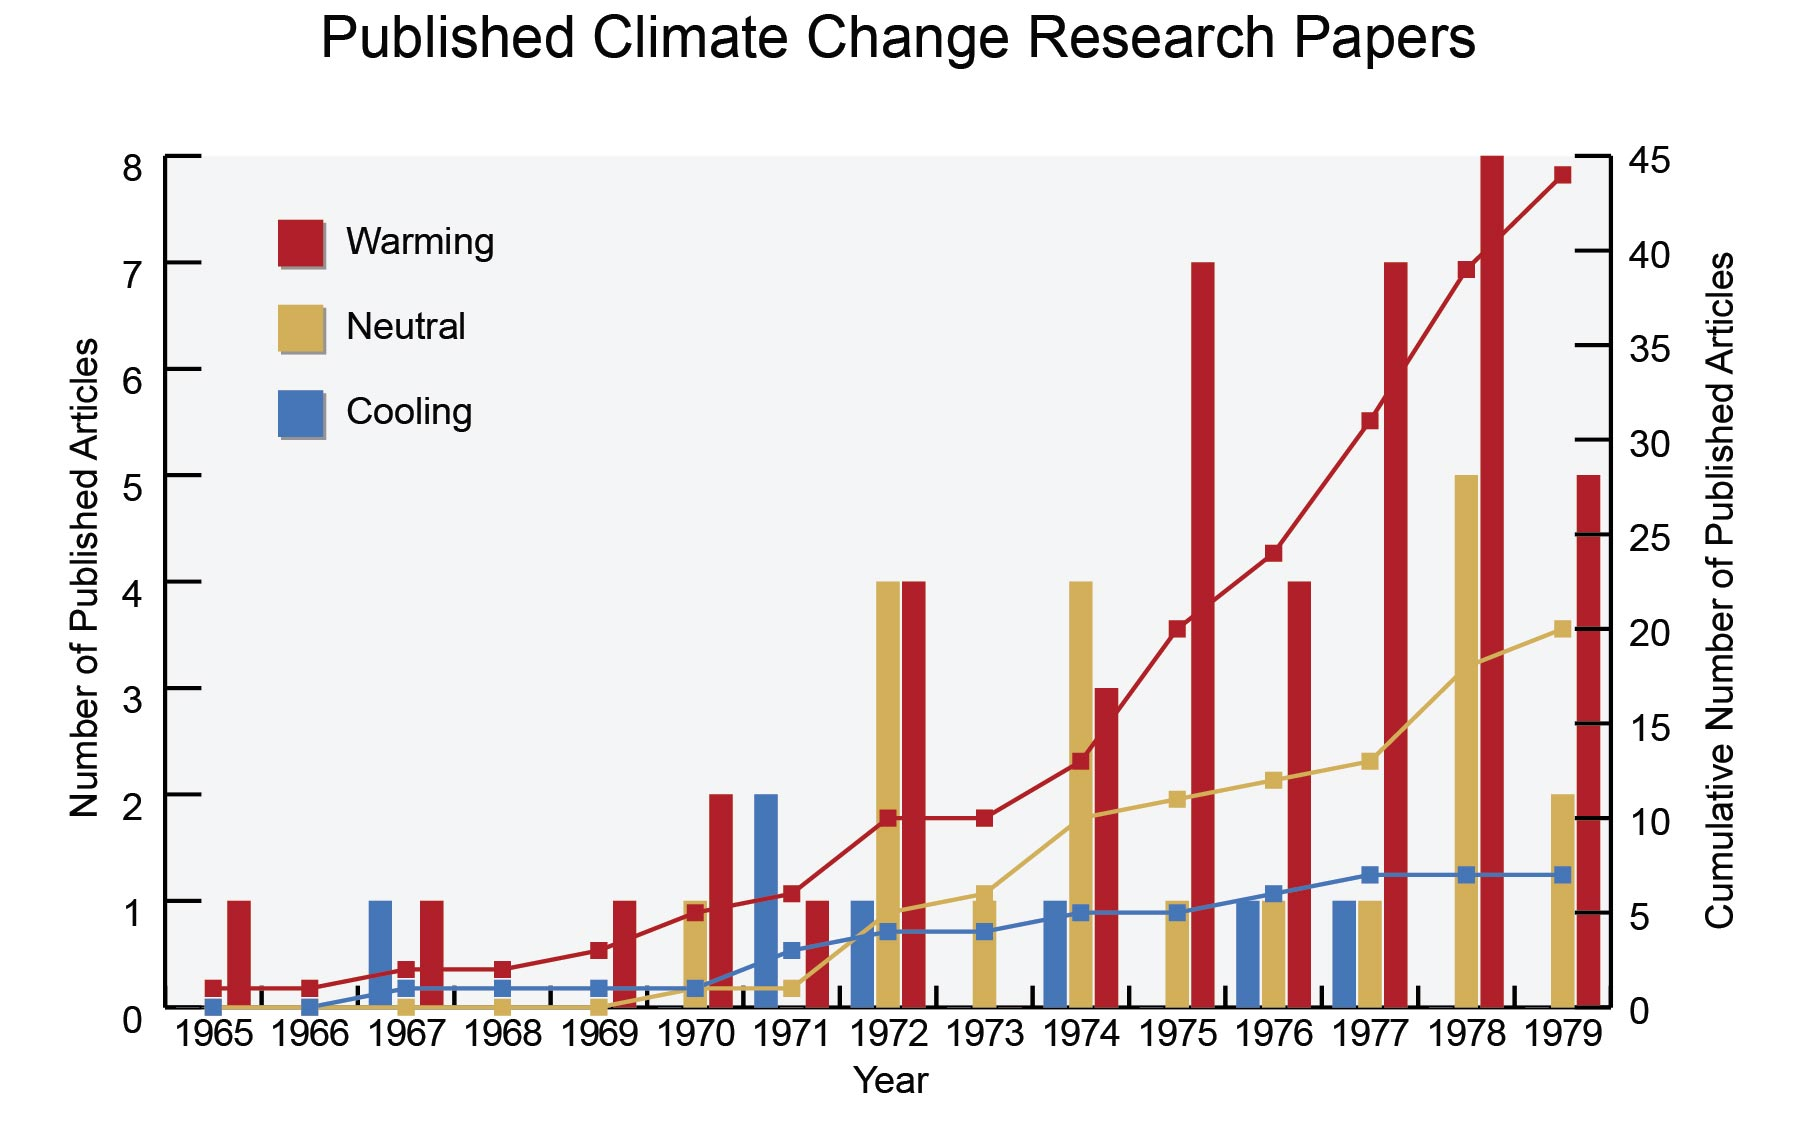 027 Research Paper Climate Change Topics Figure Awesome Full